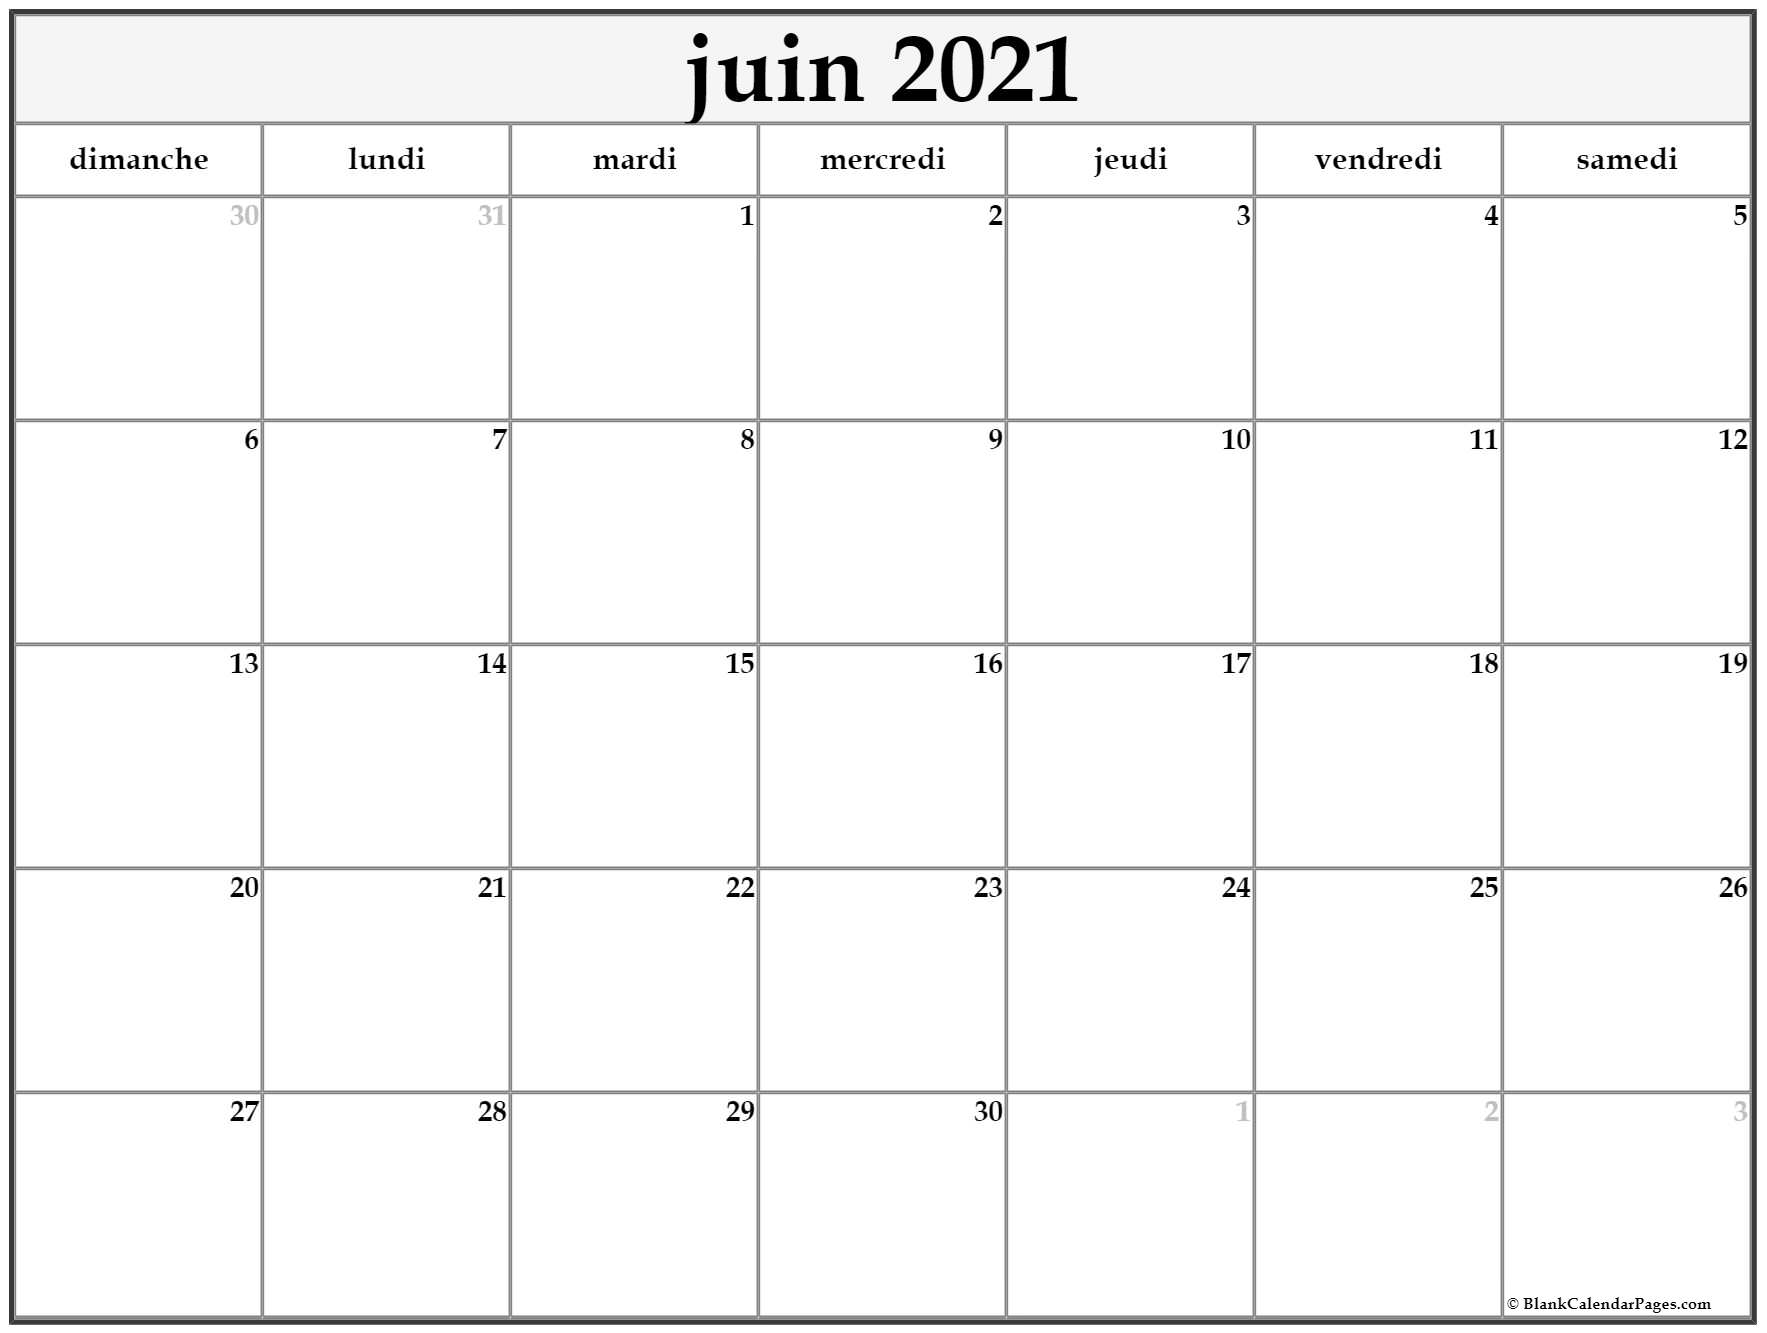 juin 2021 calendrier imprimable